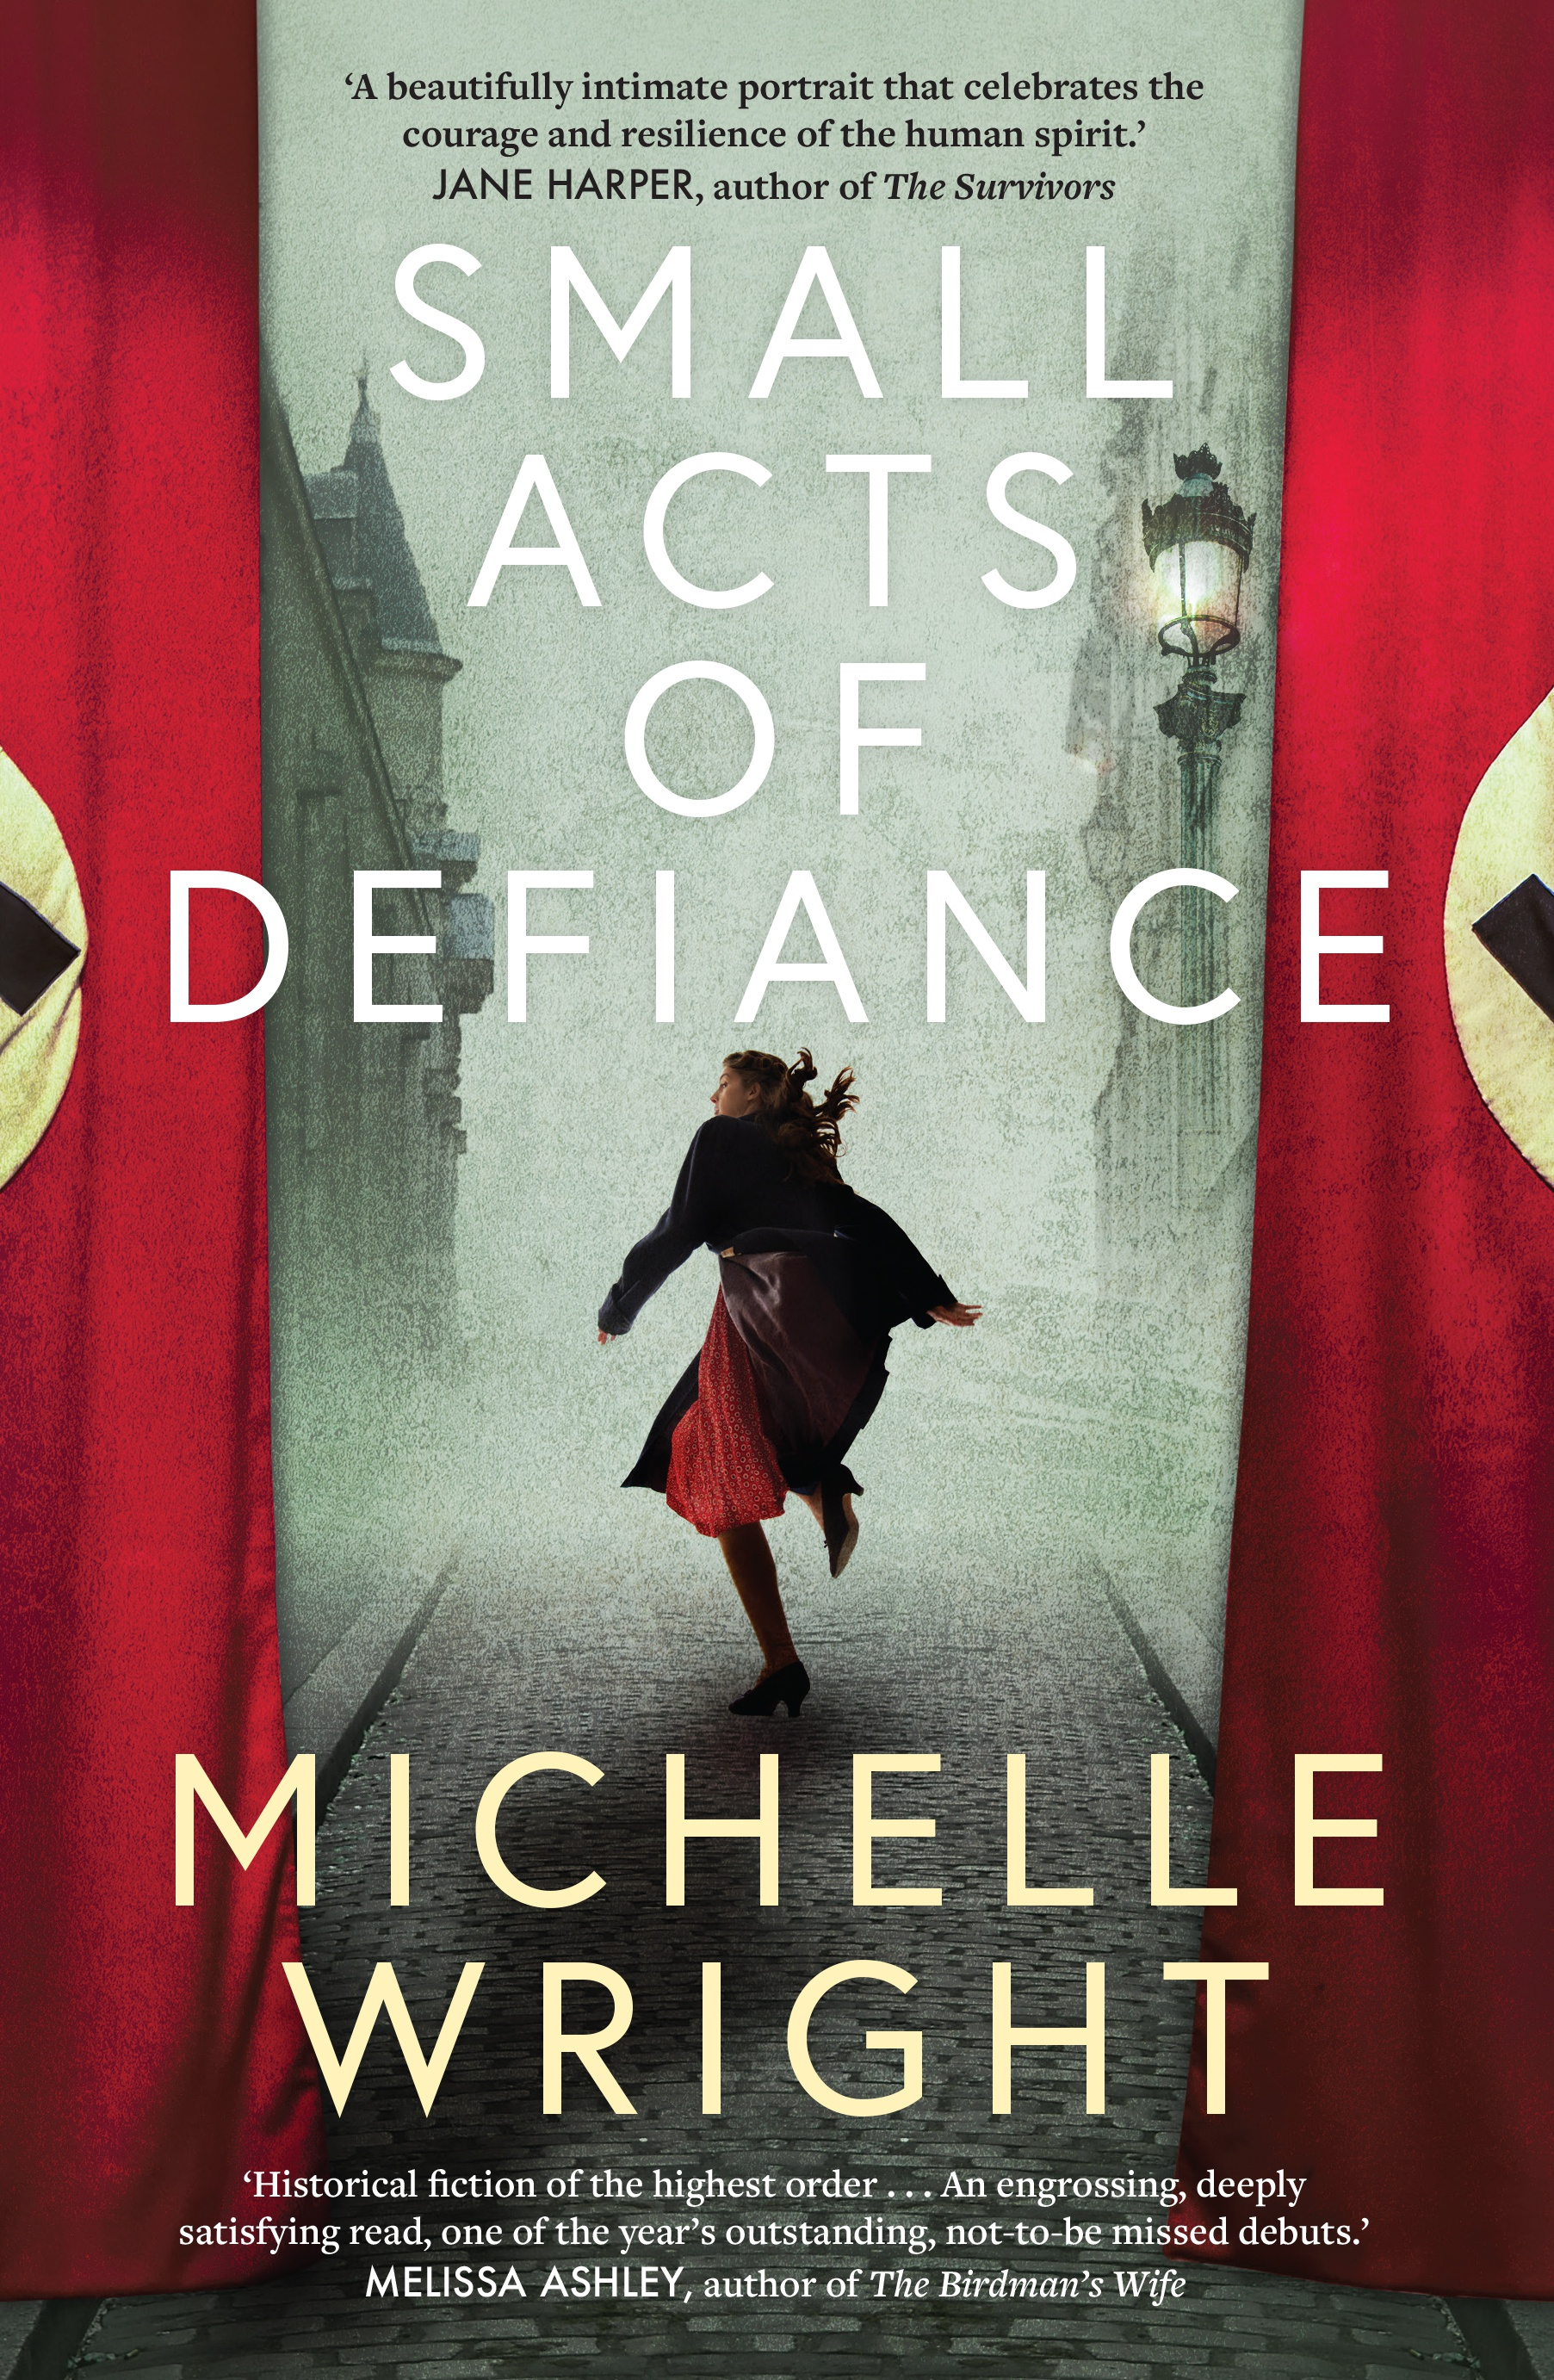 Extract from Small Acts of Defiance by Michelle Wright